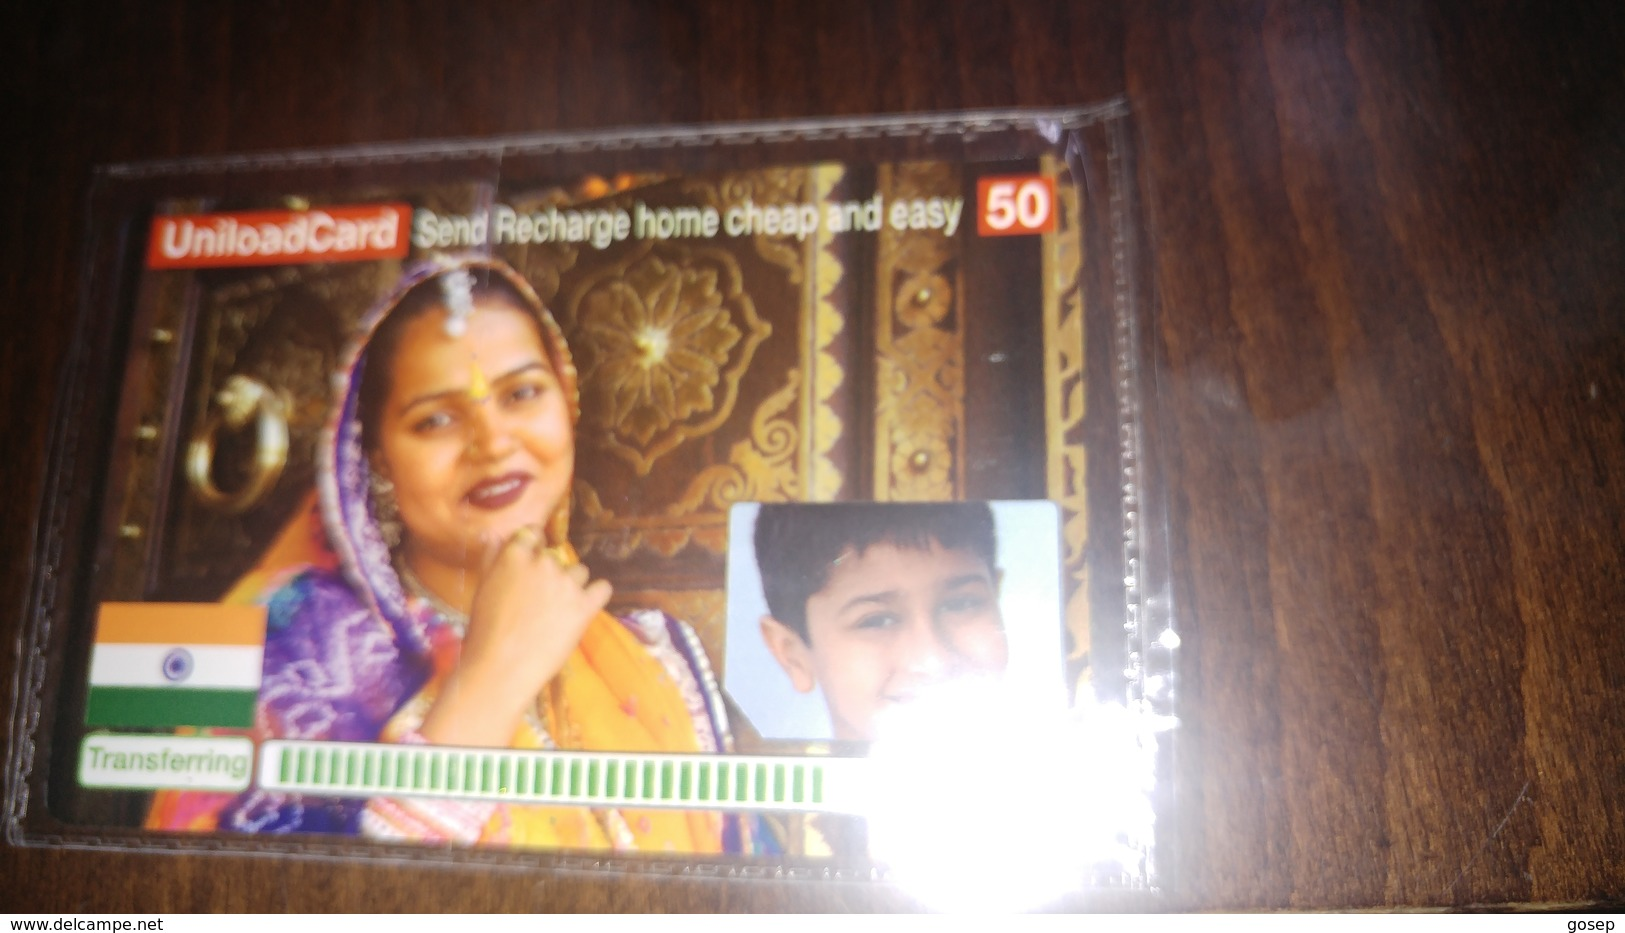 Israel-uniload Card Send Recharge Home Cheap And Easy-50-mint Card+1card Prepiad Free - India